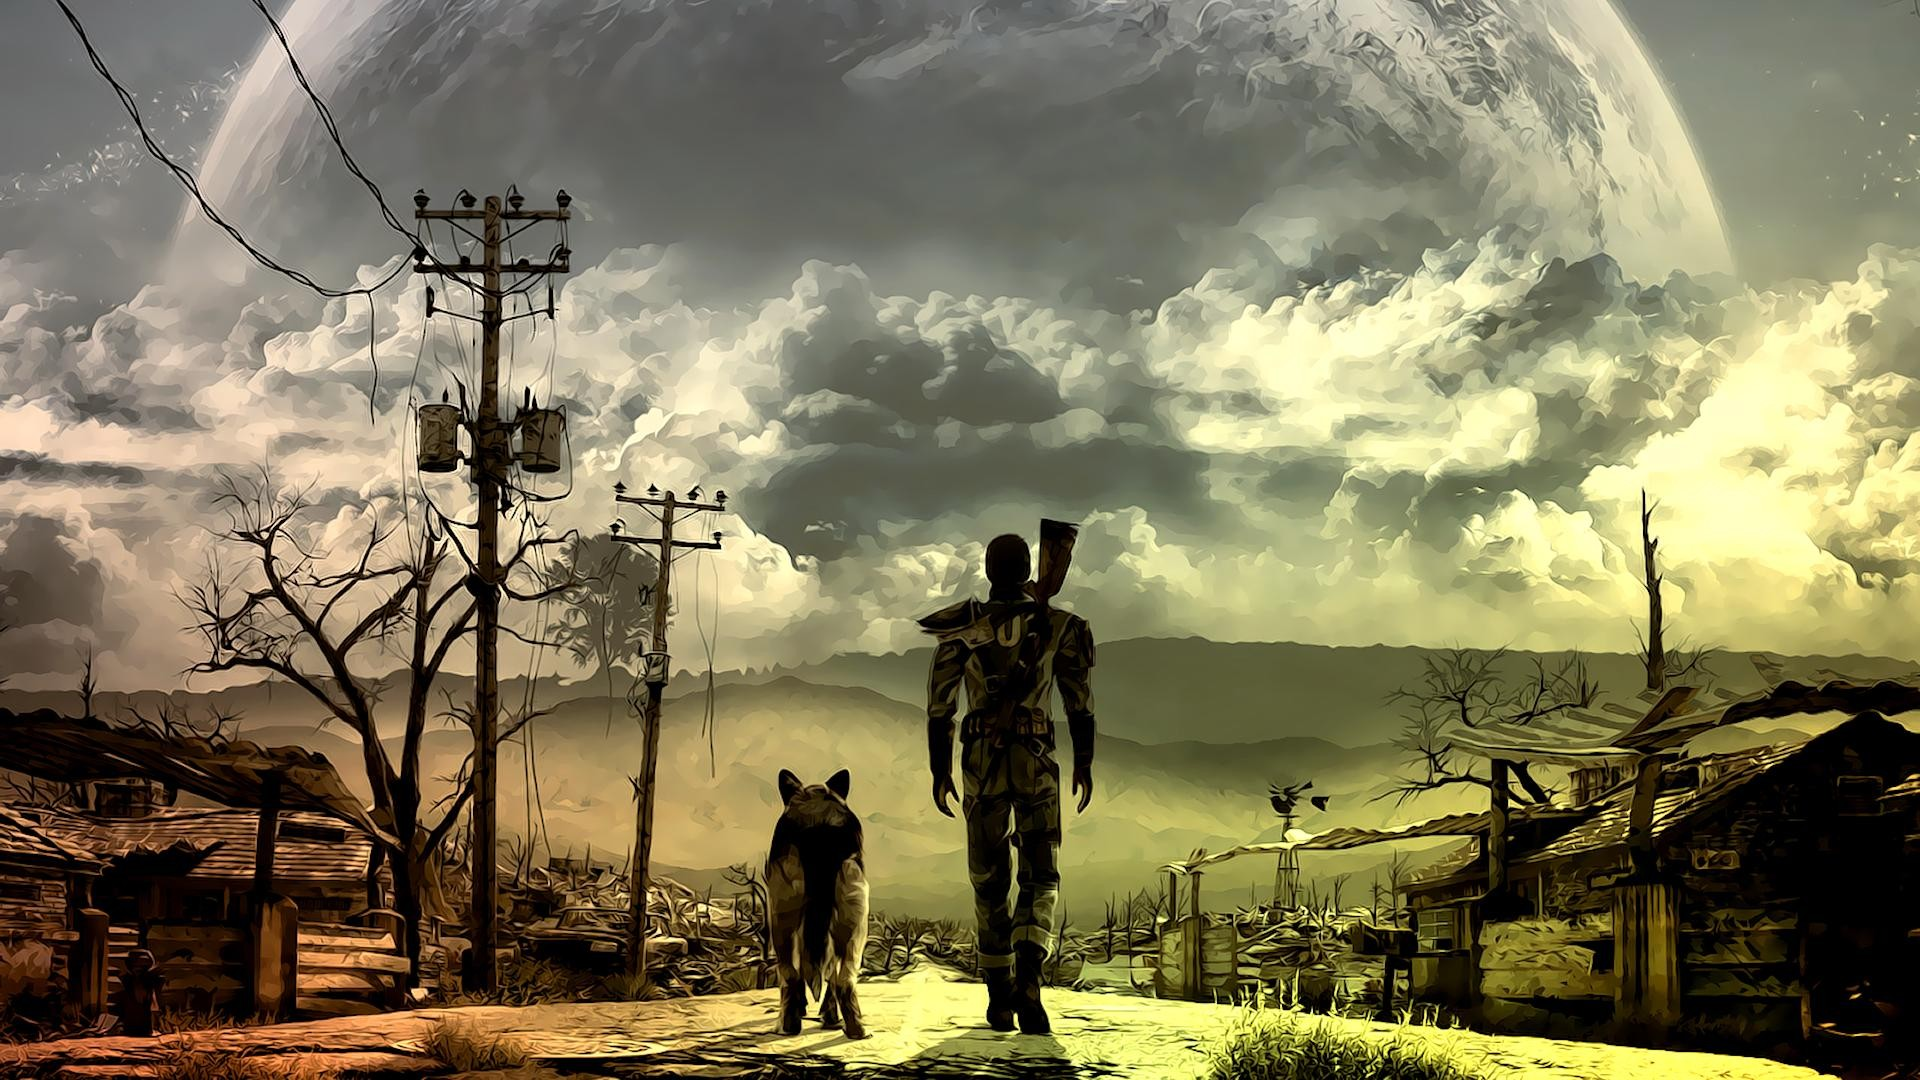 72+ fallout wallpapers ·① download free amazing high resolution